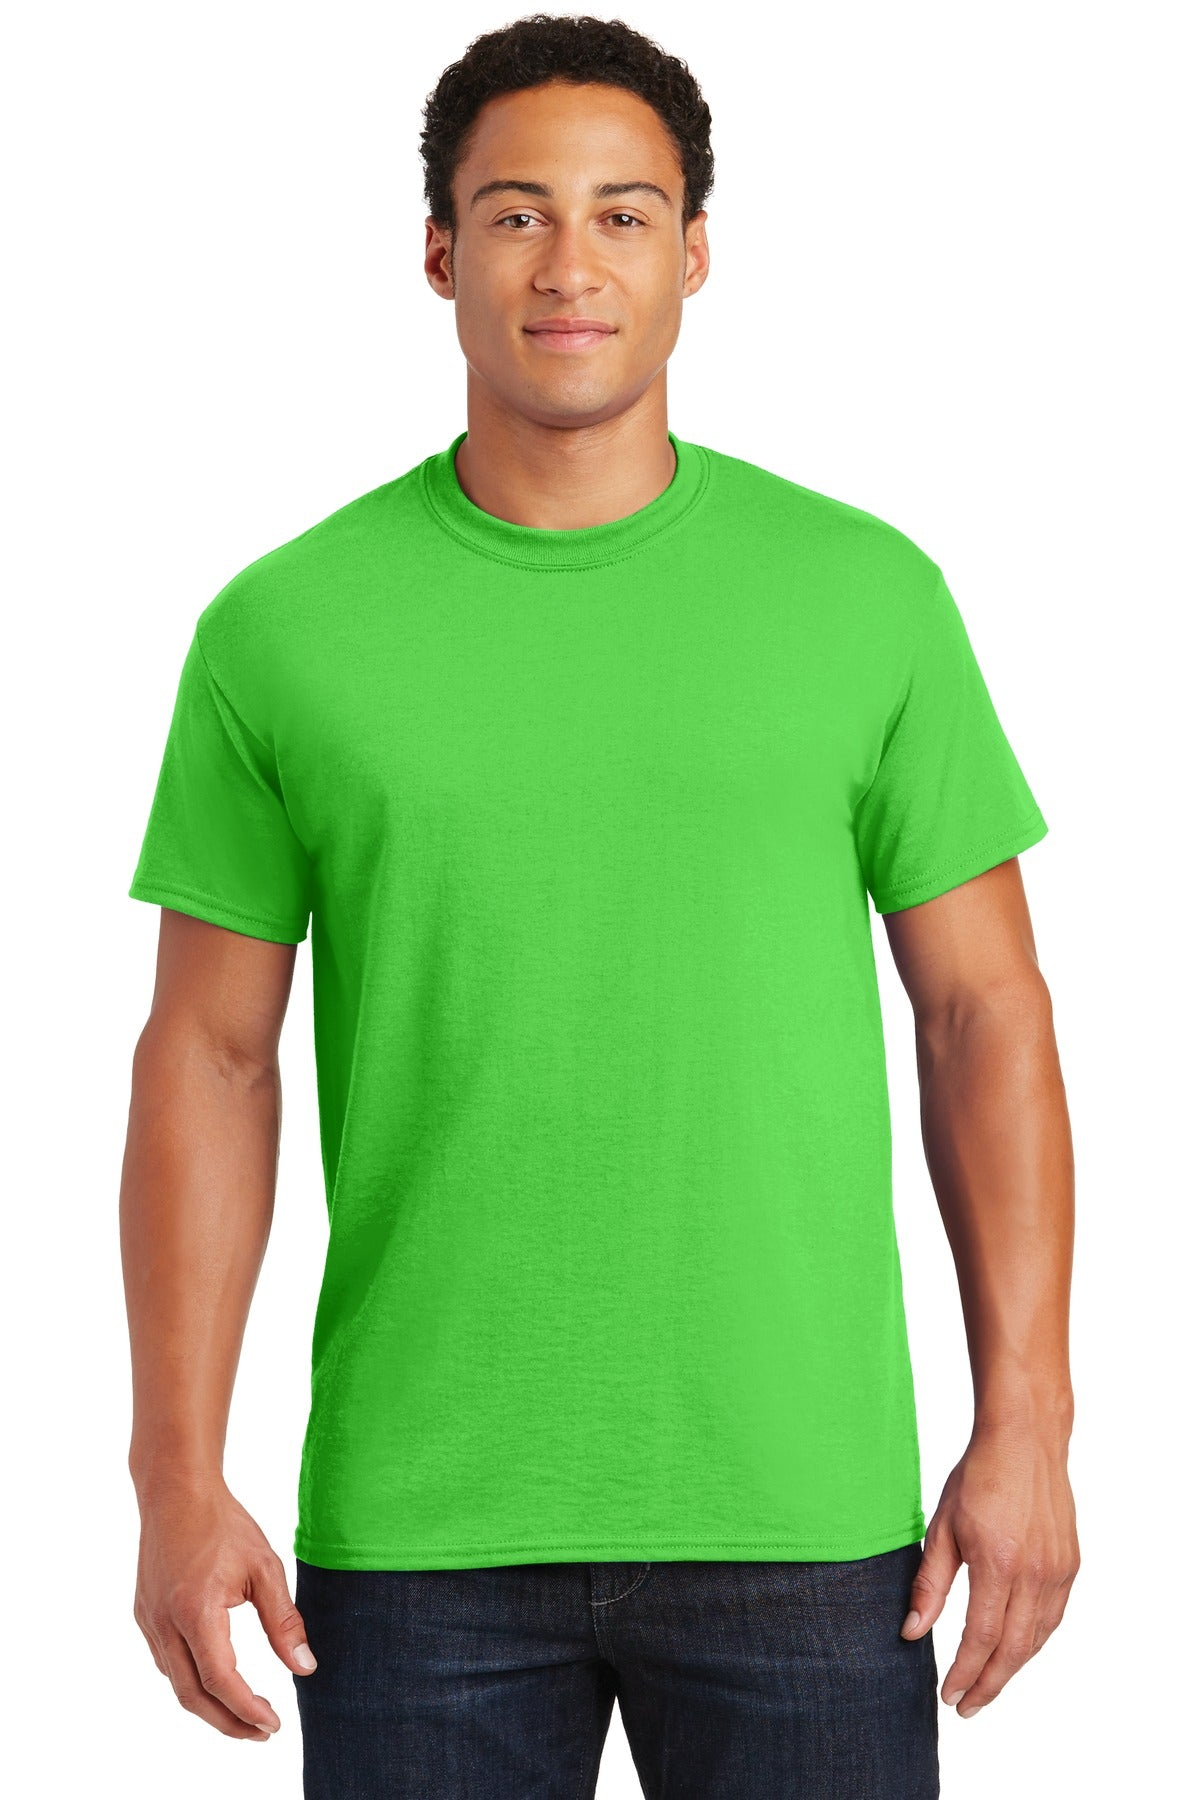 Electric Green Gildan DryBlend 50 Cotton/50 Poly T-Shirt.